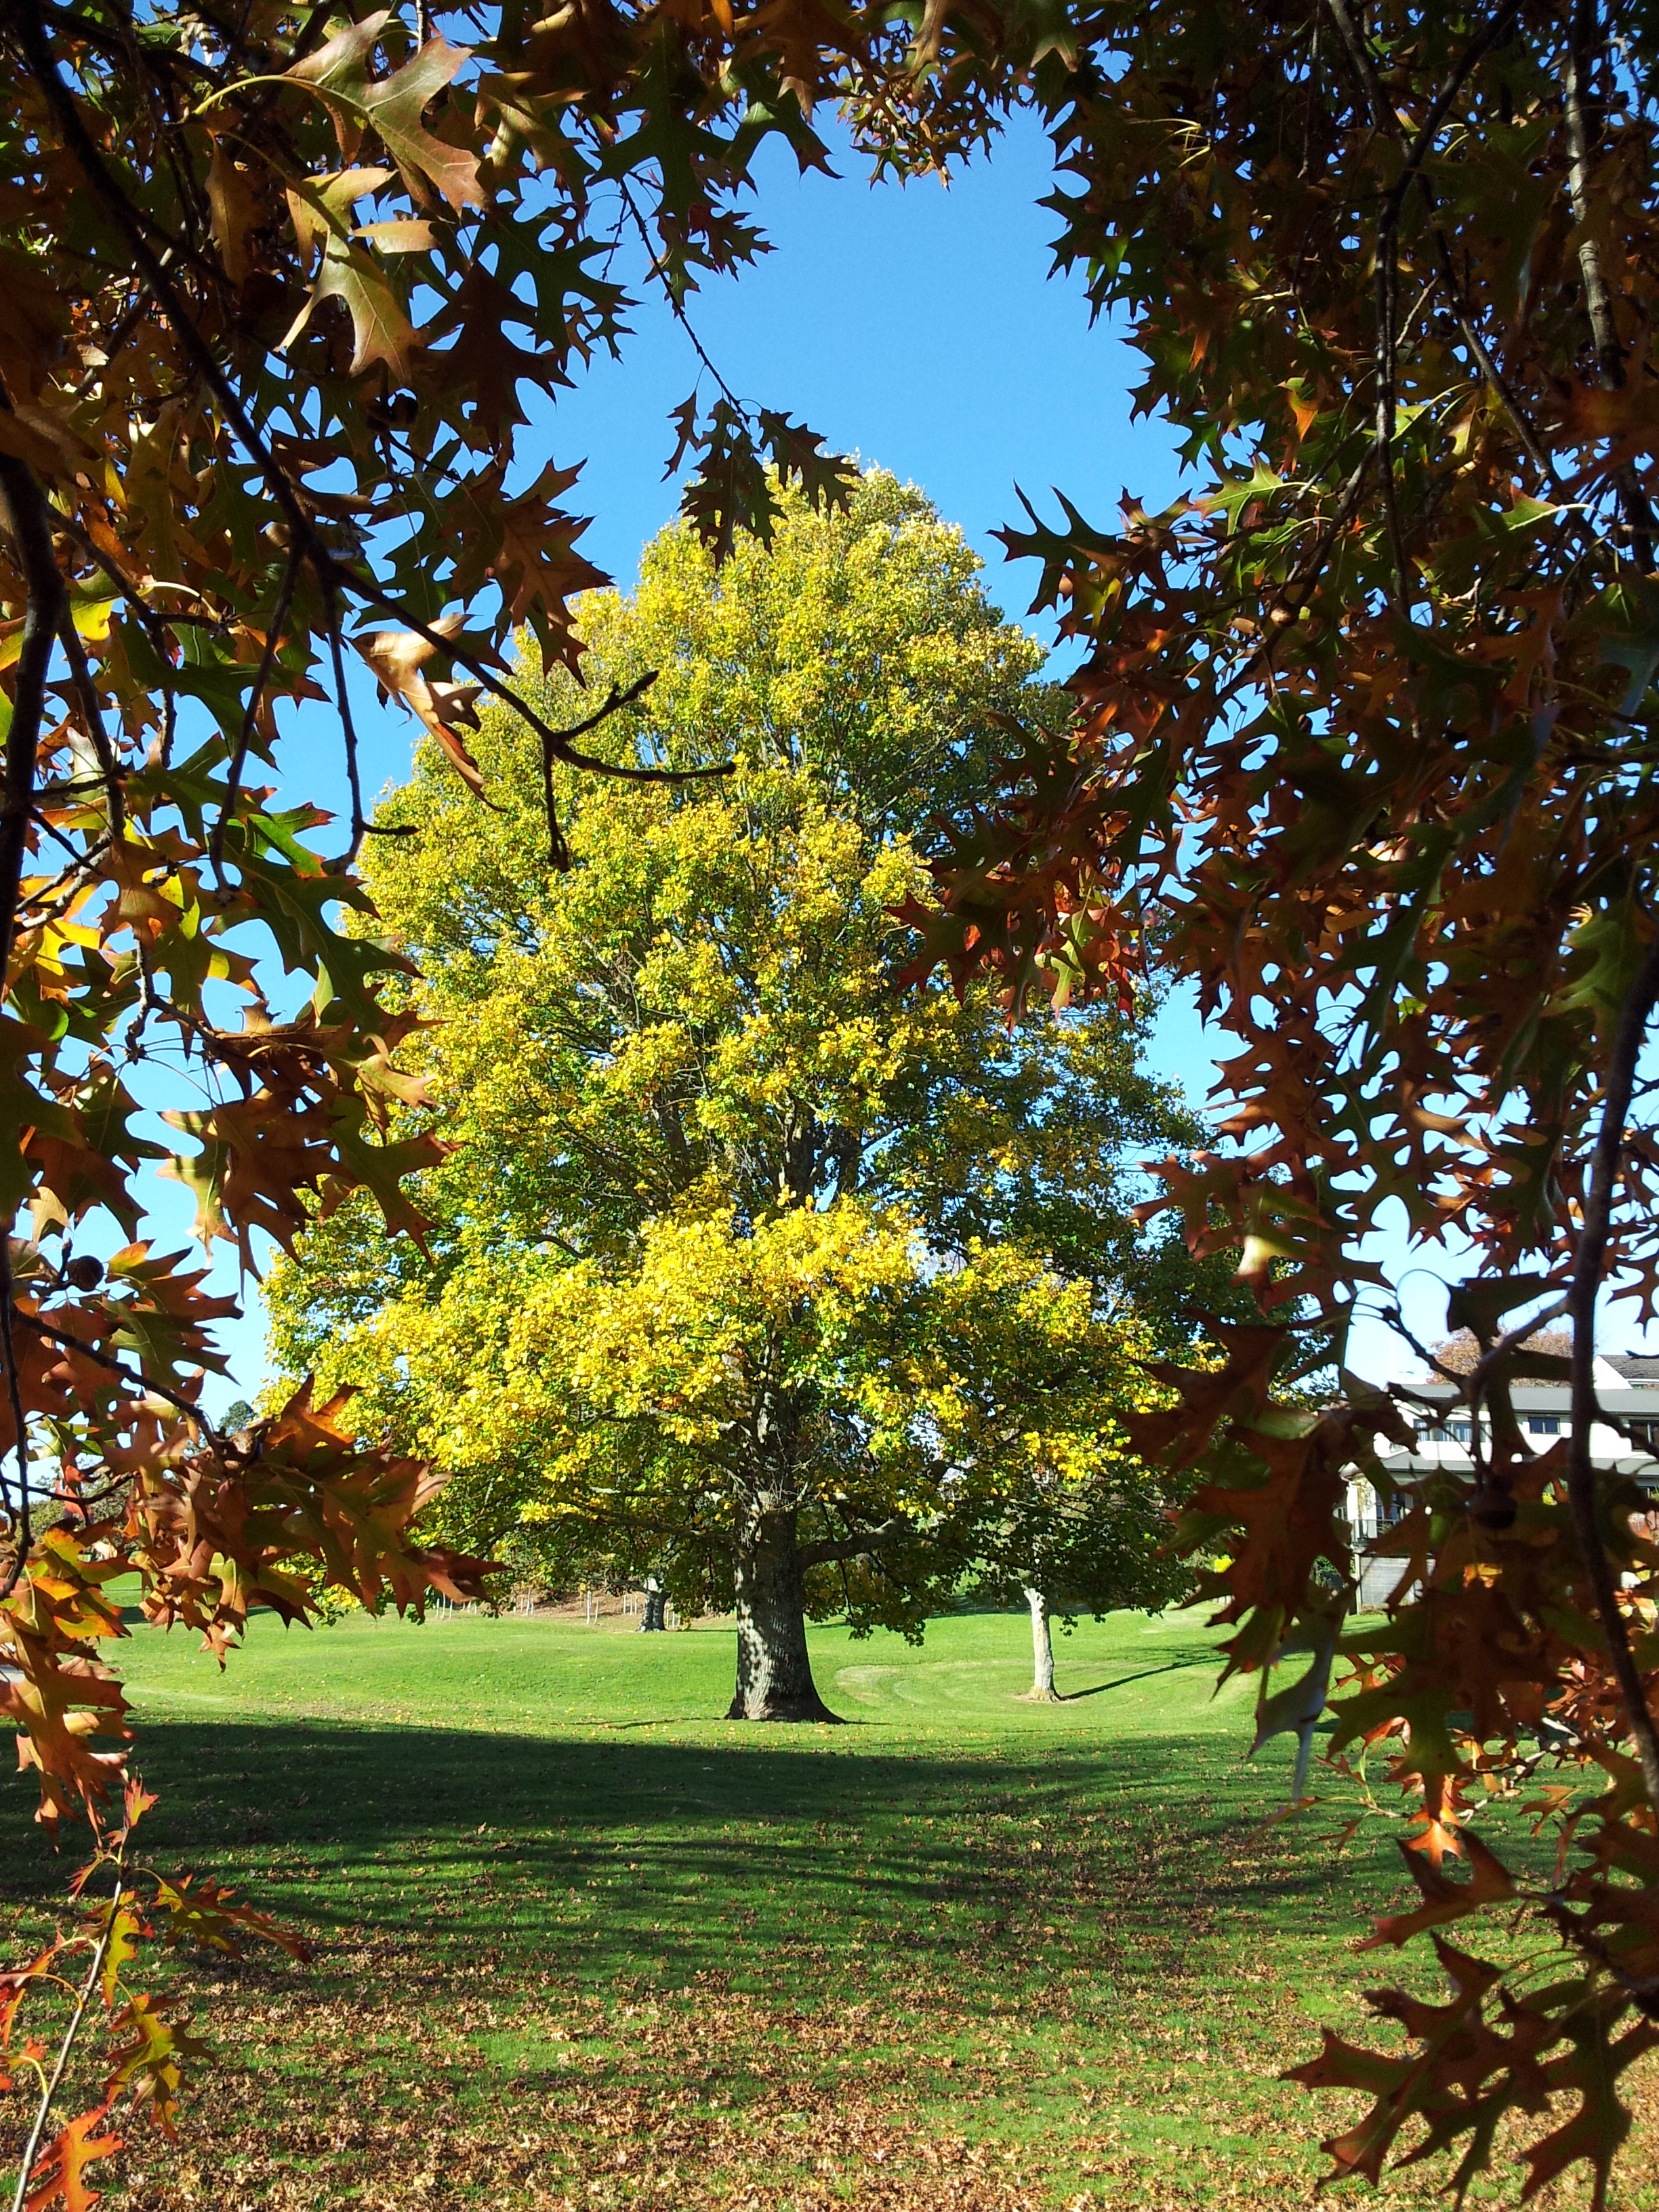 Autumn trees in Day's Park, Hamilton